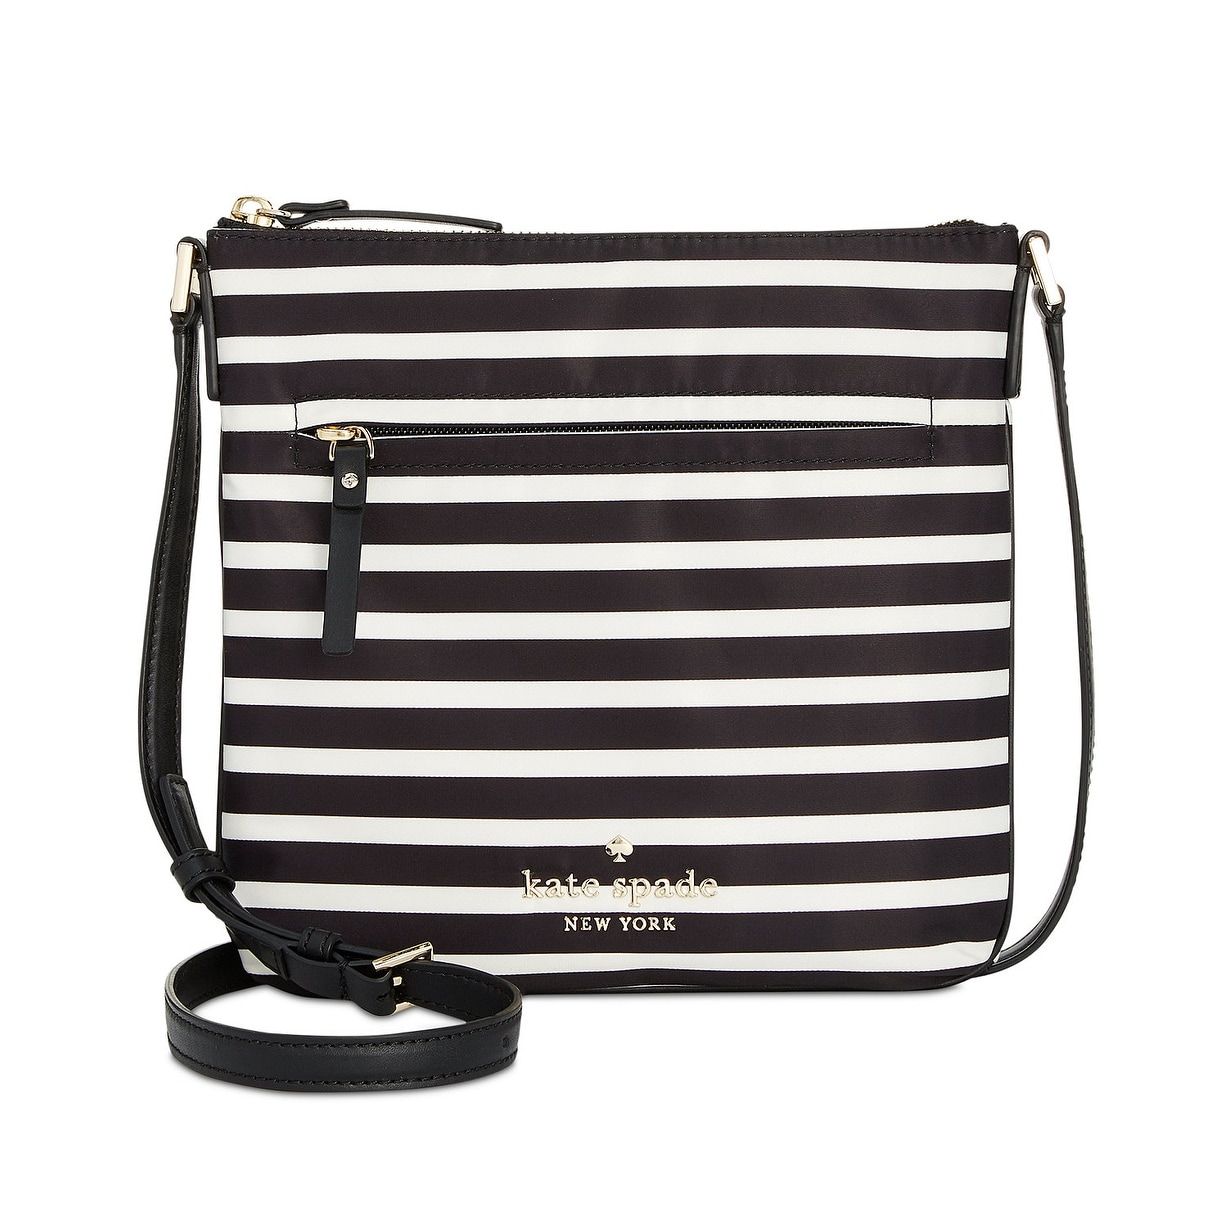 84c631ef640 Kate Spade Watson Lane Hester Striped Small Crossbody Bag Black Clotted  Cream - One size